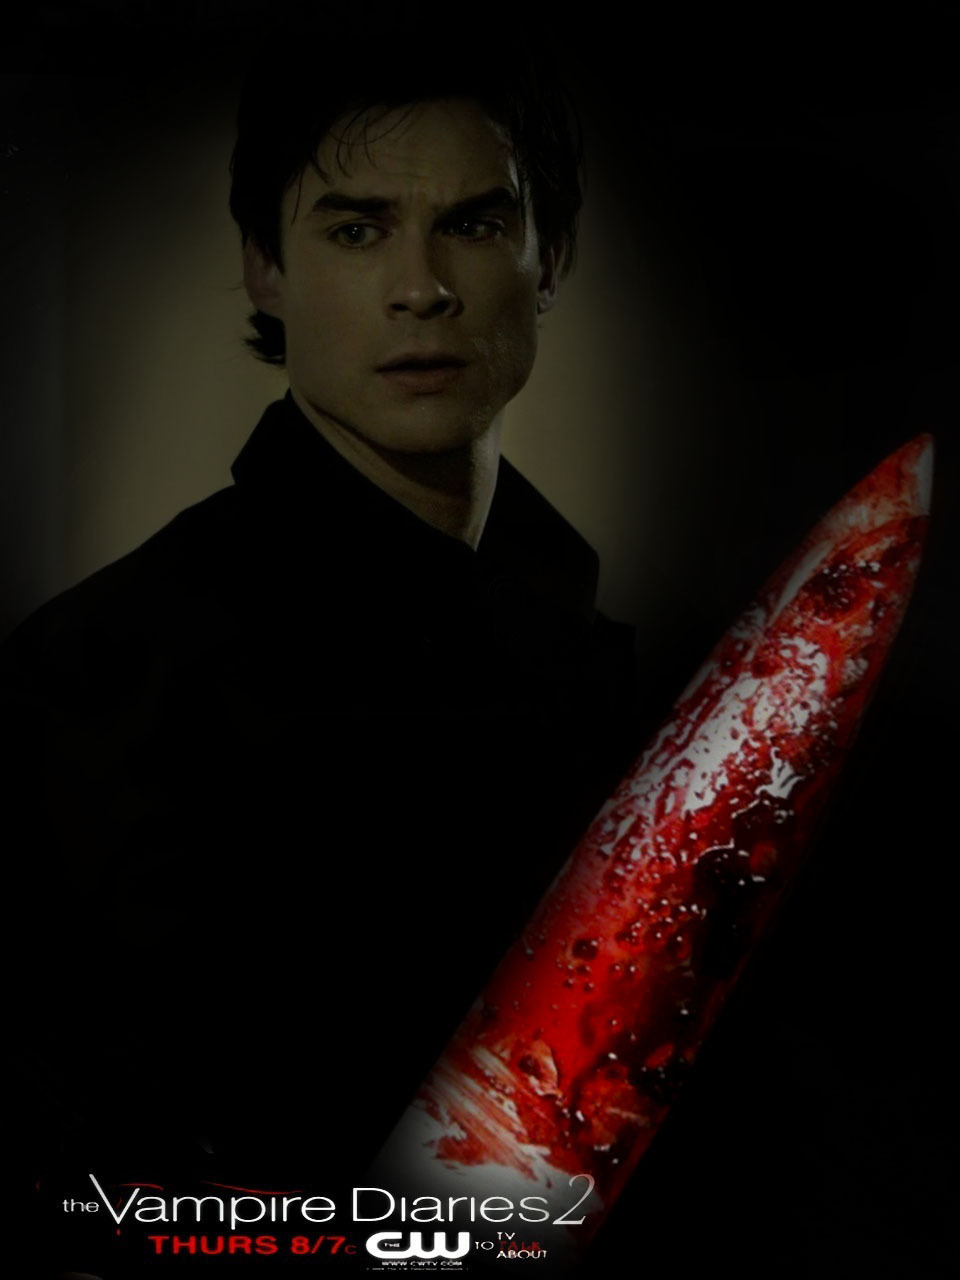 http://images2.fanpop.com/image/photos/13900000/the-vampire-diaries-season2-094777438-spoilers-image054-the-vampire-diaries-13988462-960-1280.jpg